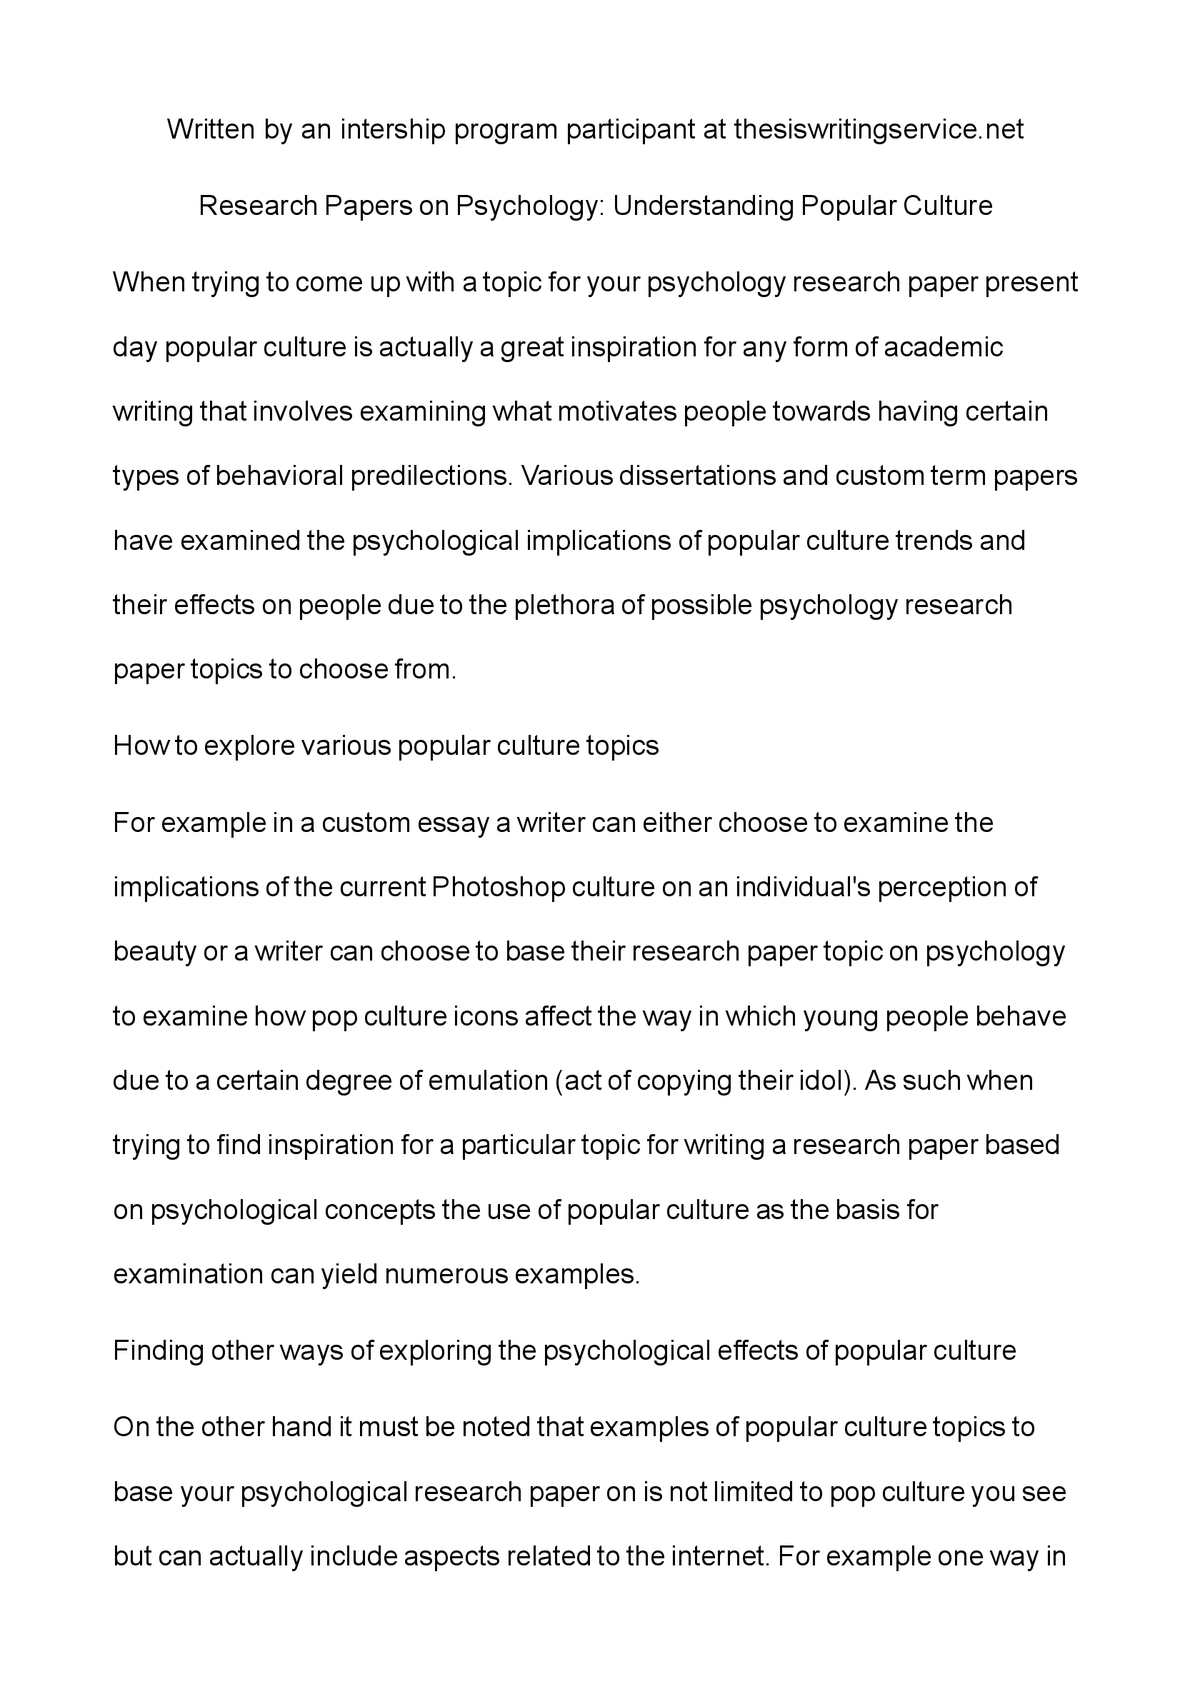 003 Research Paper Psychology Papers Surprising For Topic Examples Online Full